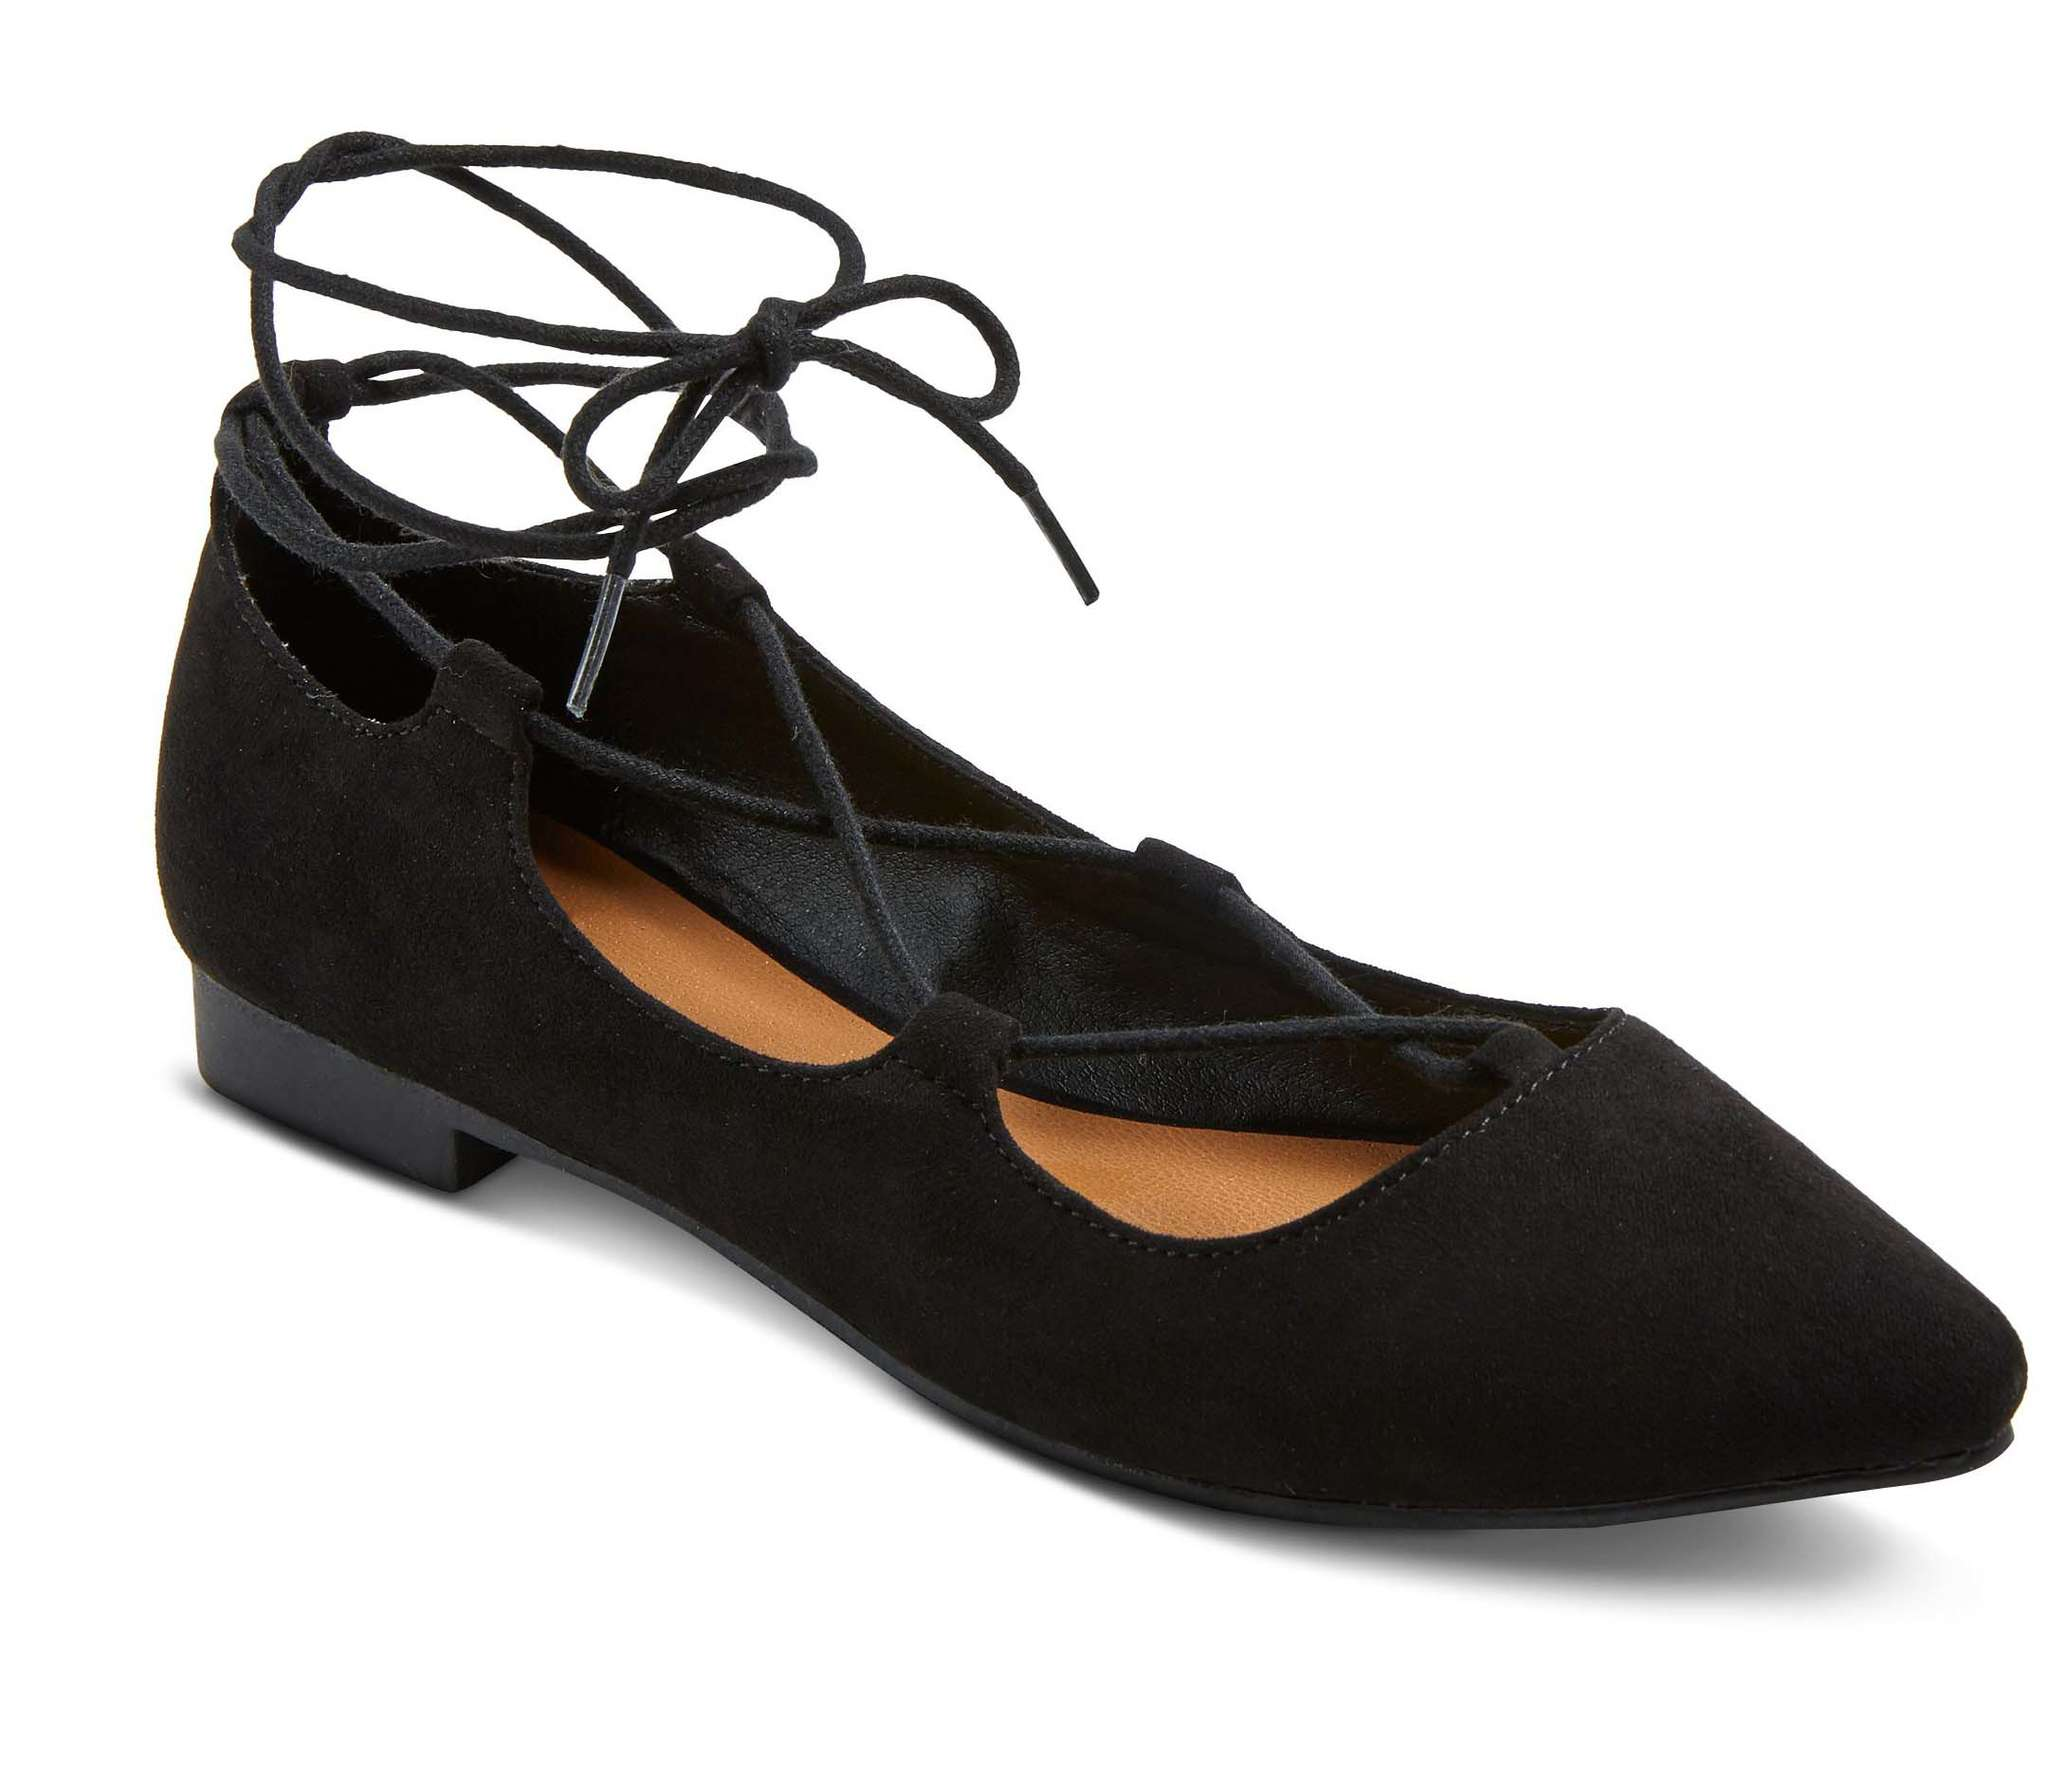 Kady pointy-toe lace-up ballet flats, Mossimo Supply Co., $24.99 at Target.